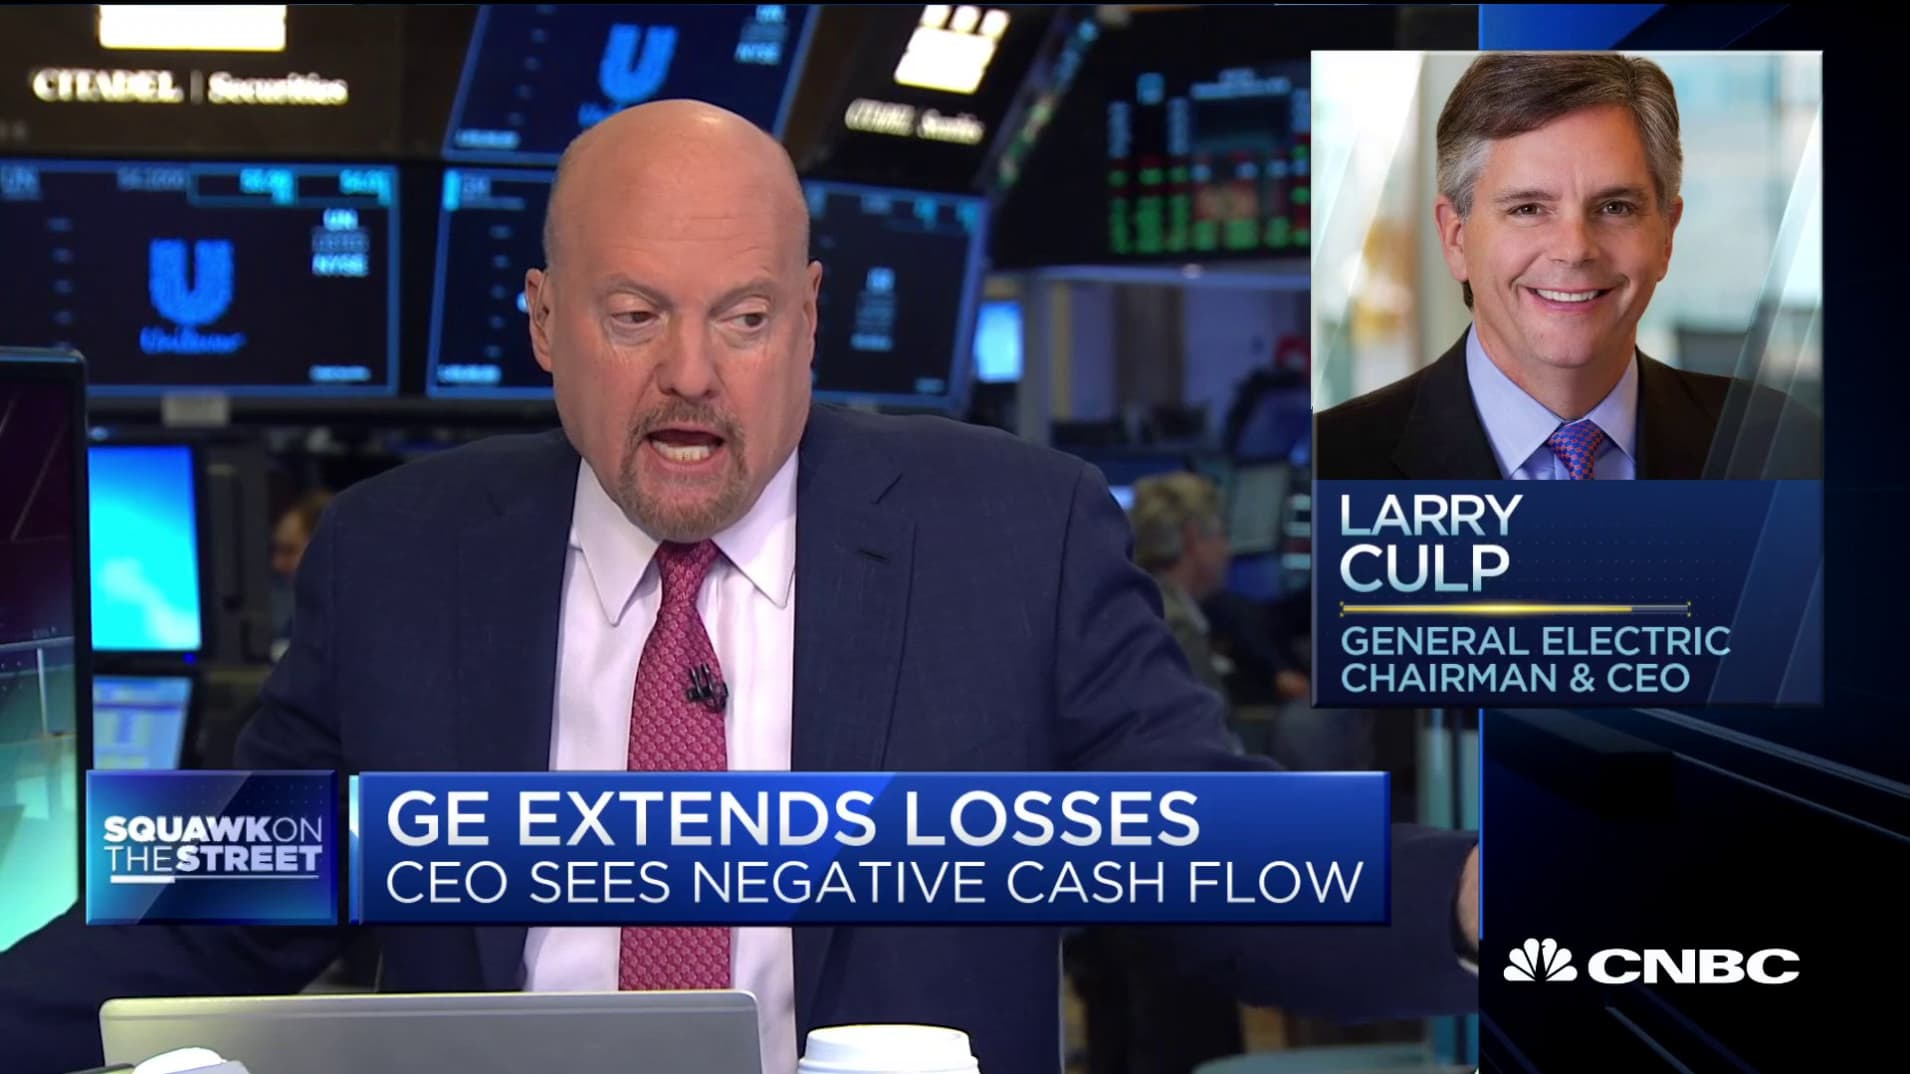 Cramer on the shocker from GE's CEO: 'You dropped a bomb on my head'